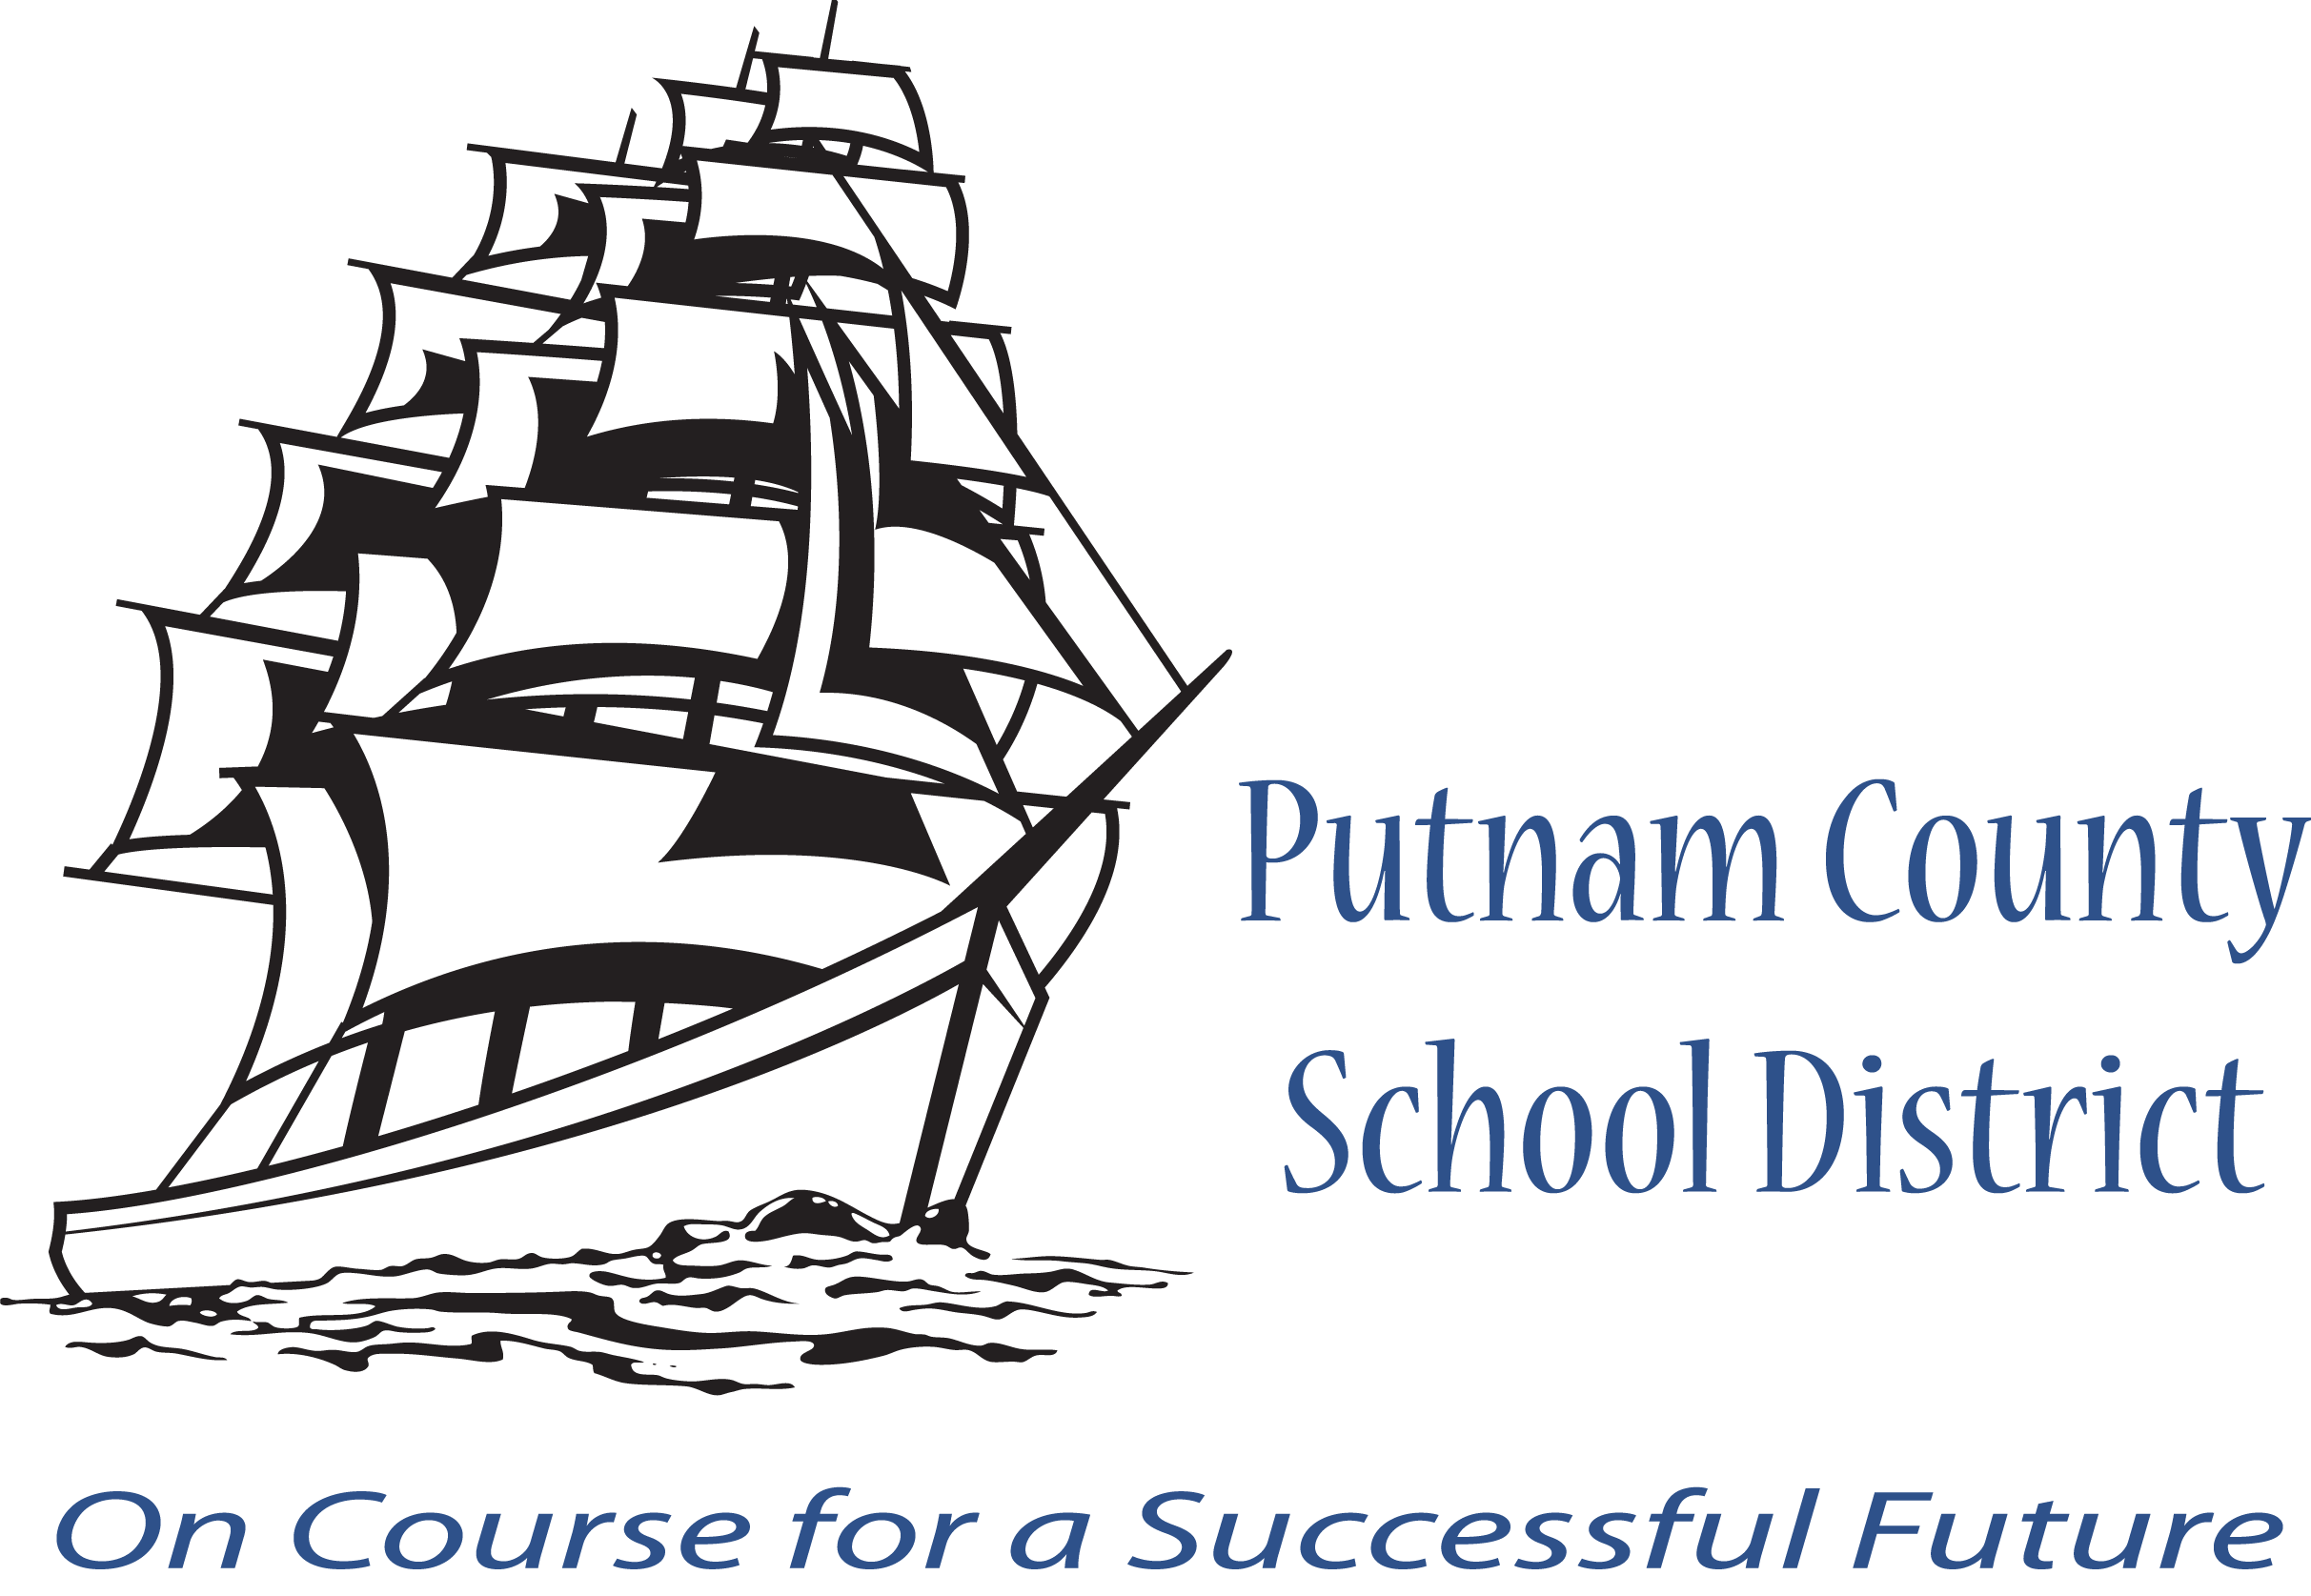 Putnam County School District